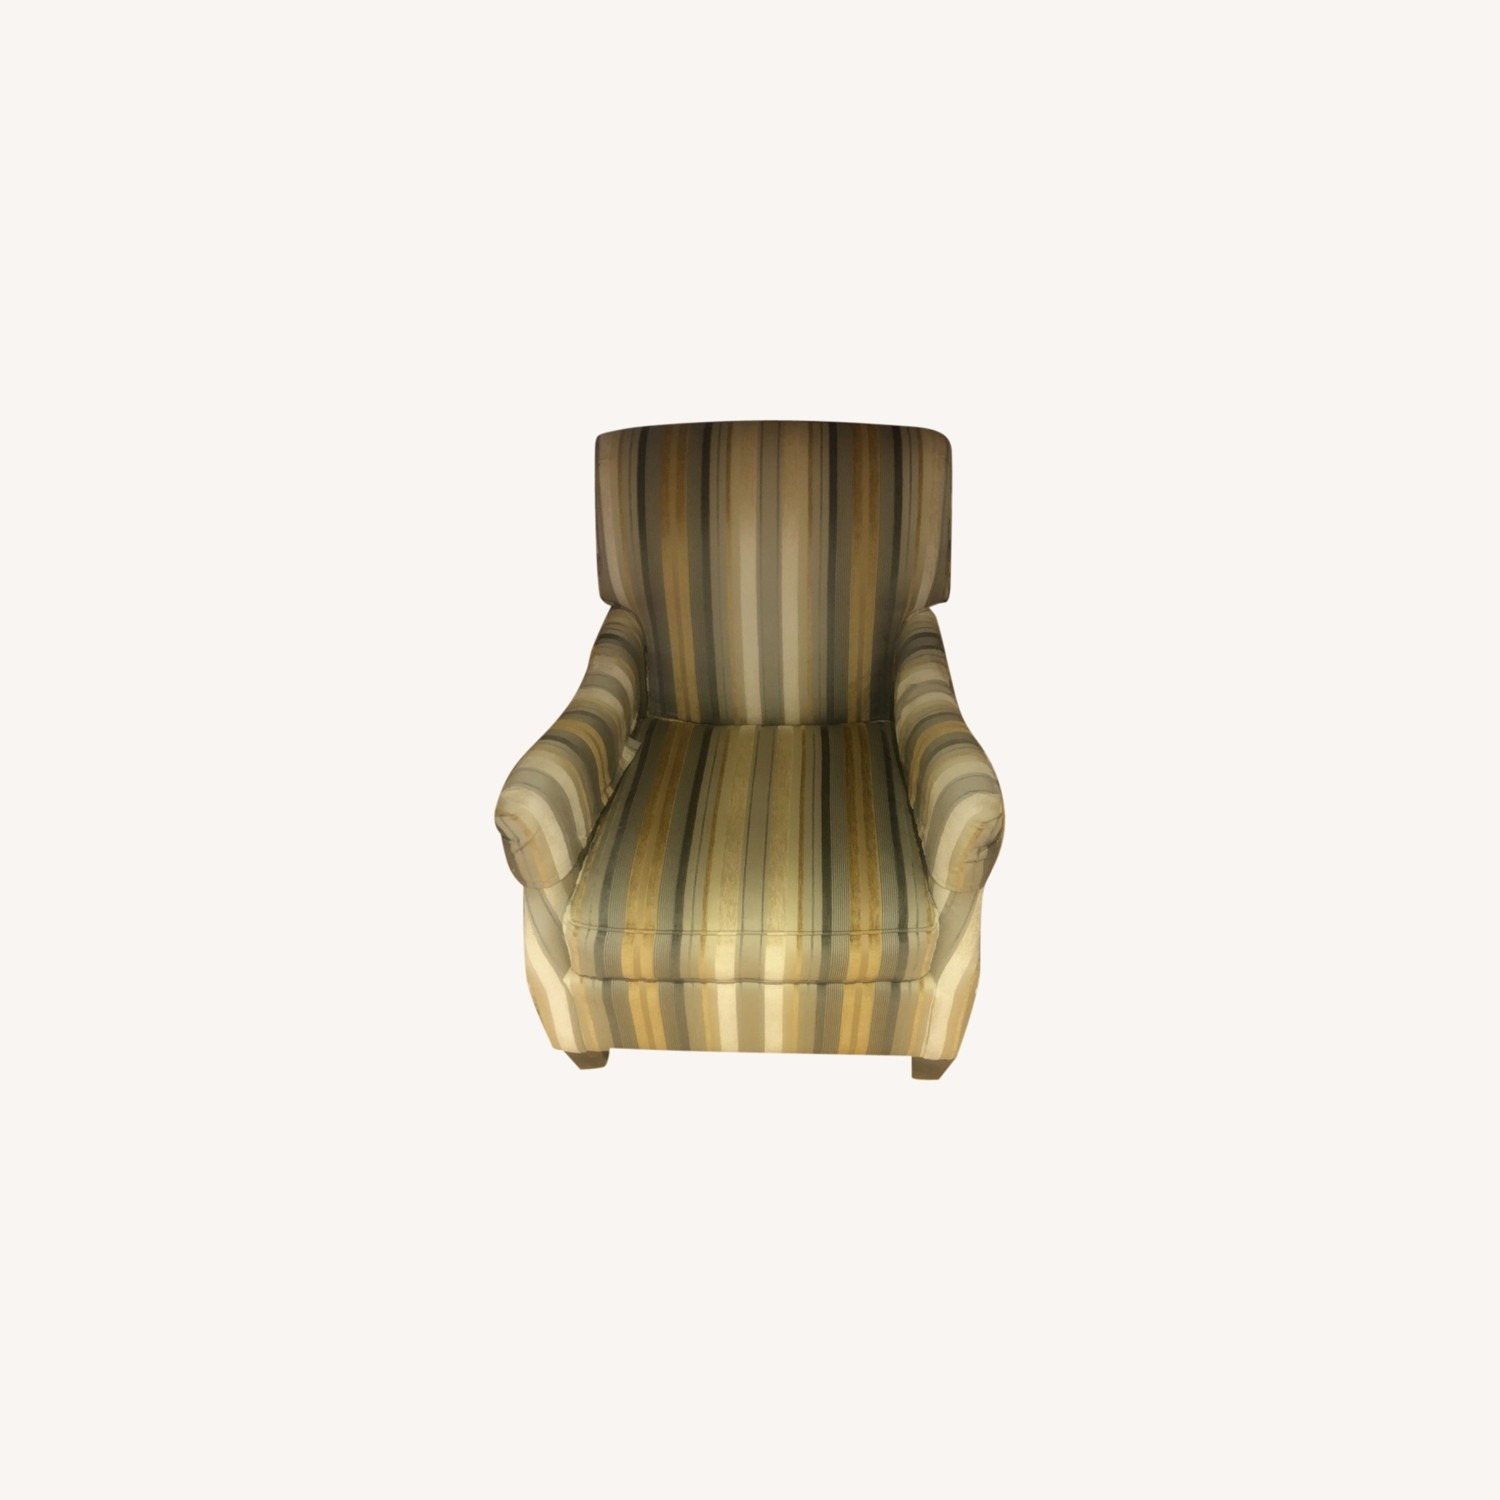 Dennis LennerVery Cushioned Comfortable Arm Chair - image-4